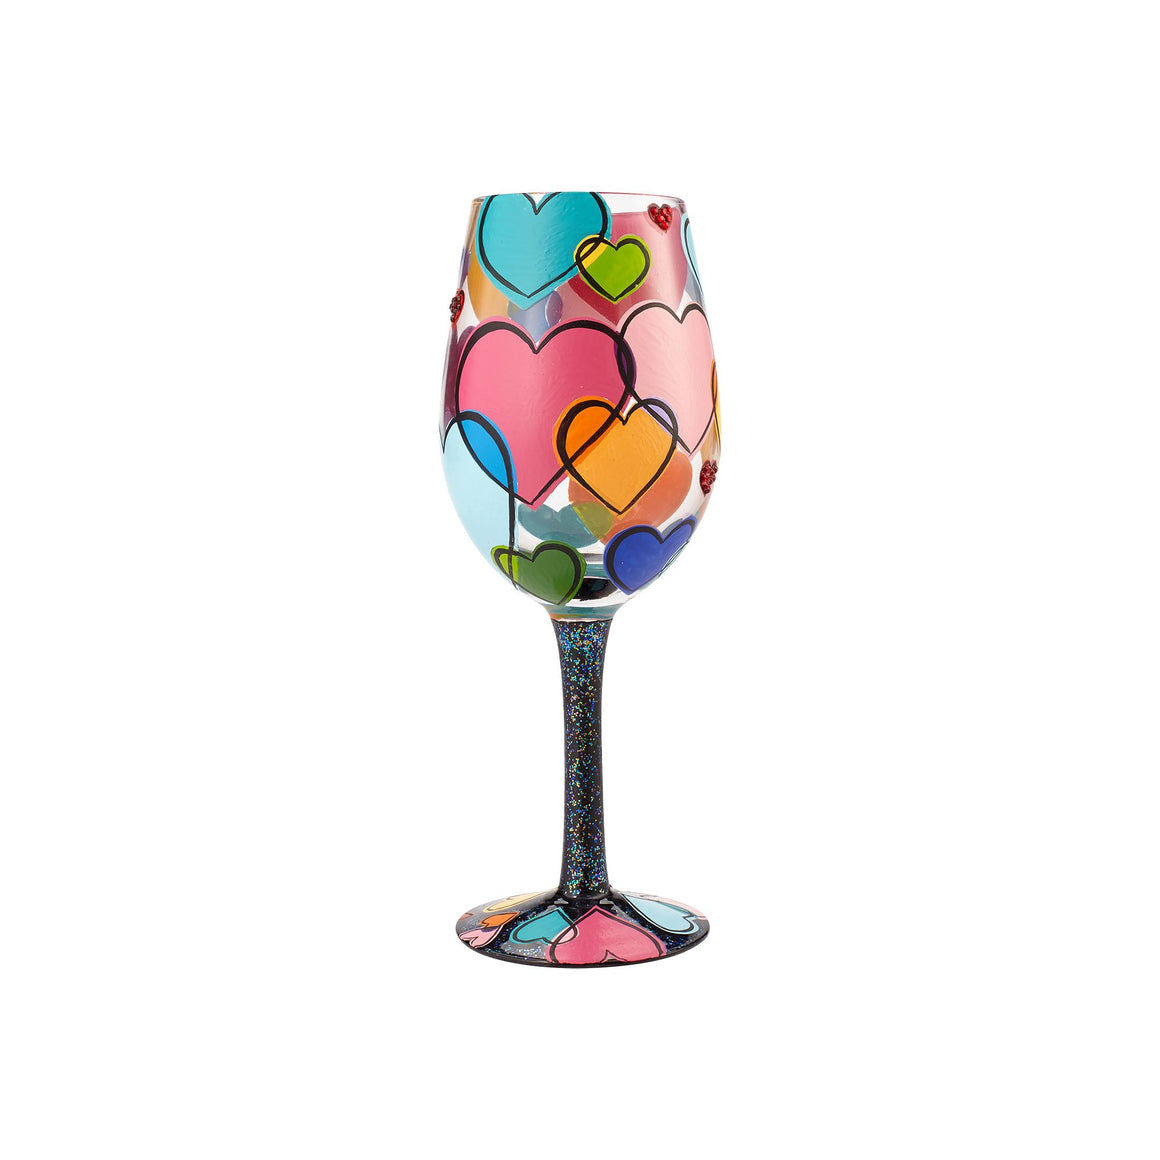 Lolita Love Is All Around Us Wine Glass by Lolita